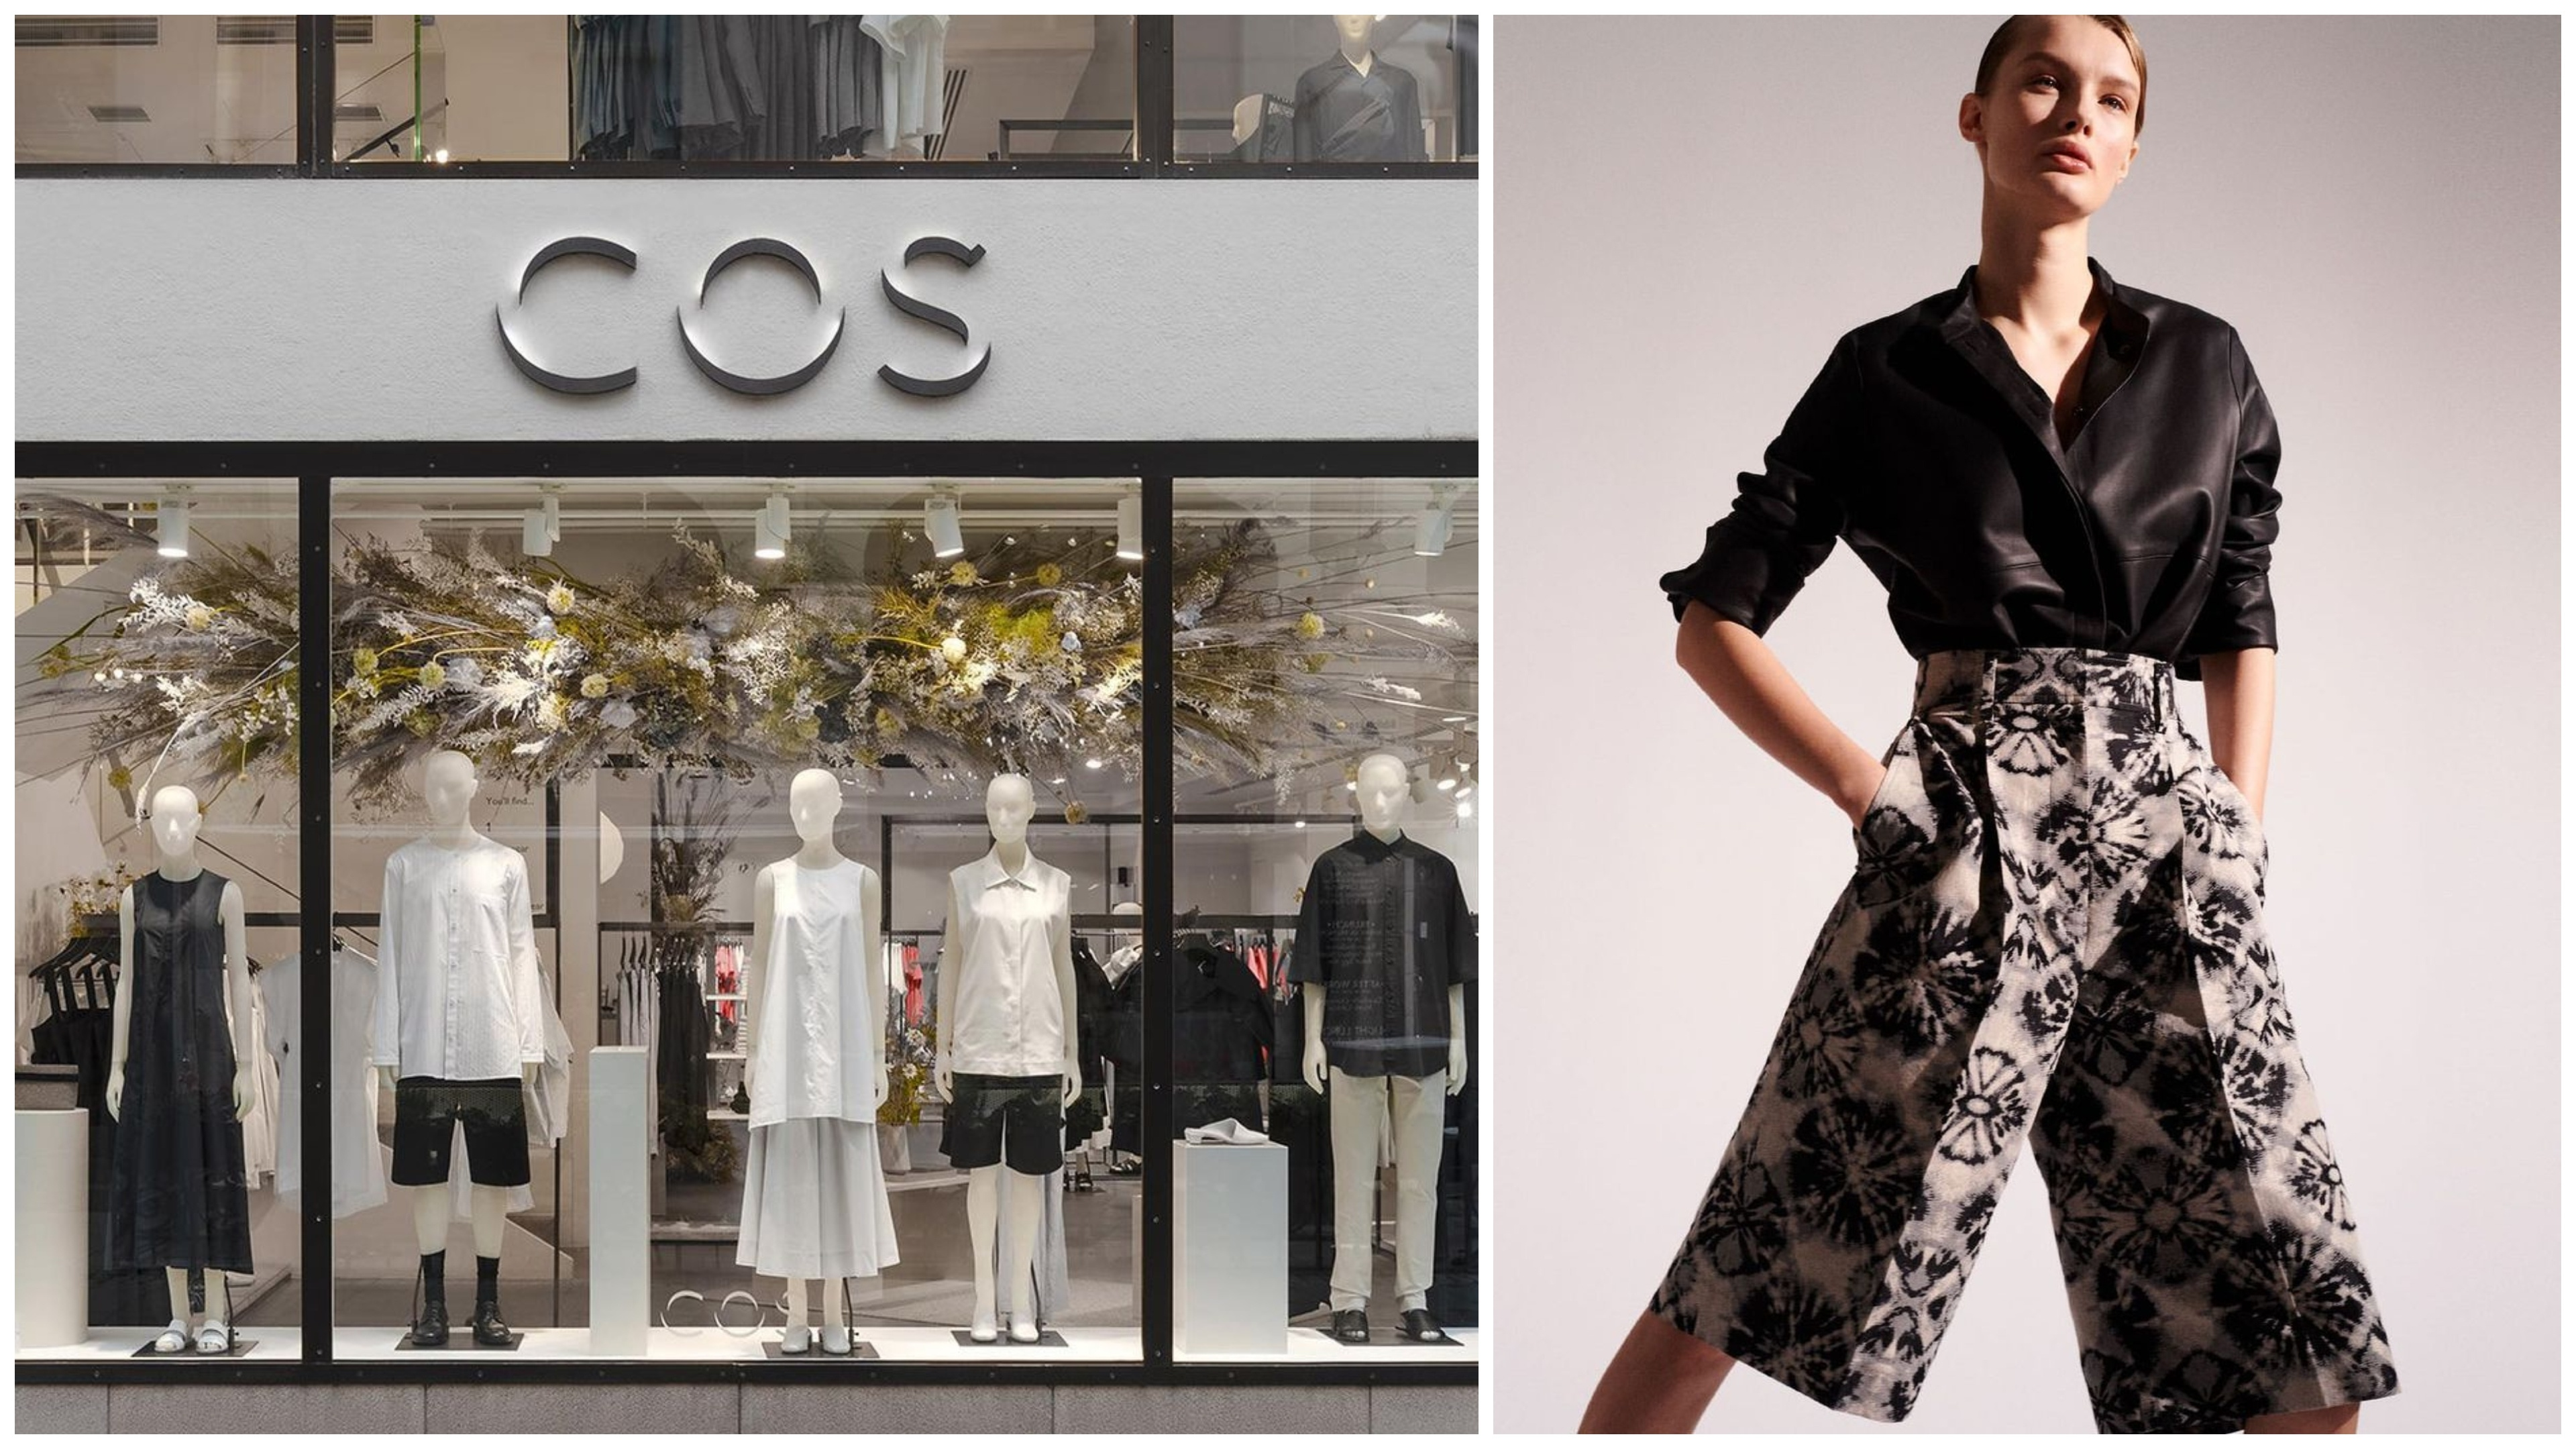 """COS"" Fashion Brand Set to Open Its First Store in the Philippines"